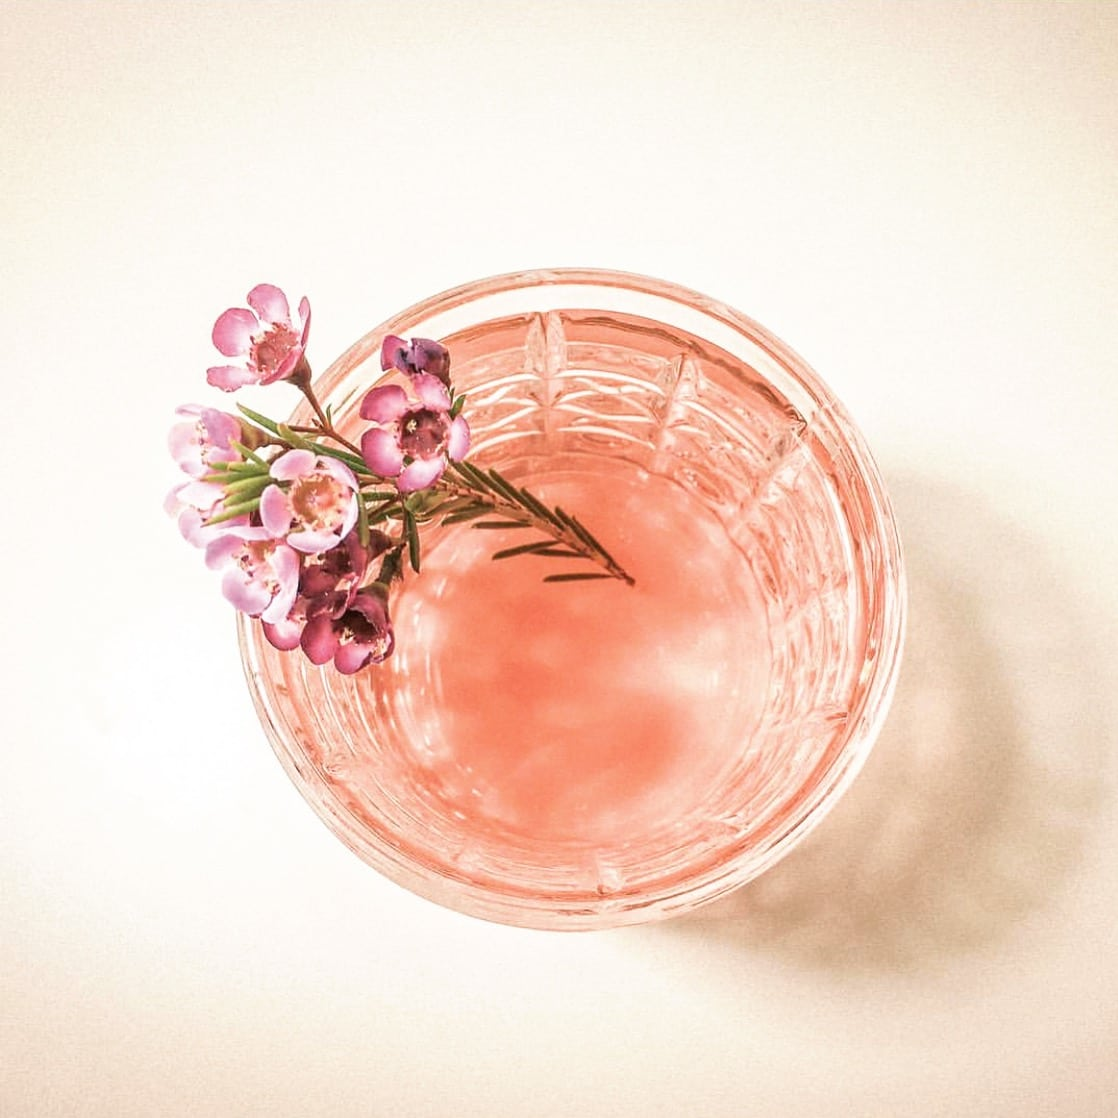 spring and summer cocktails - Maison Marcel rosé French Fashioned. Photo courtesy Maison Marcel